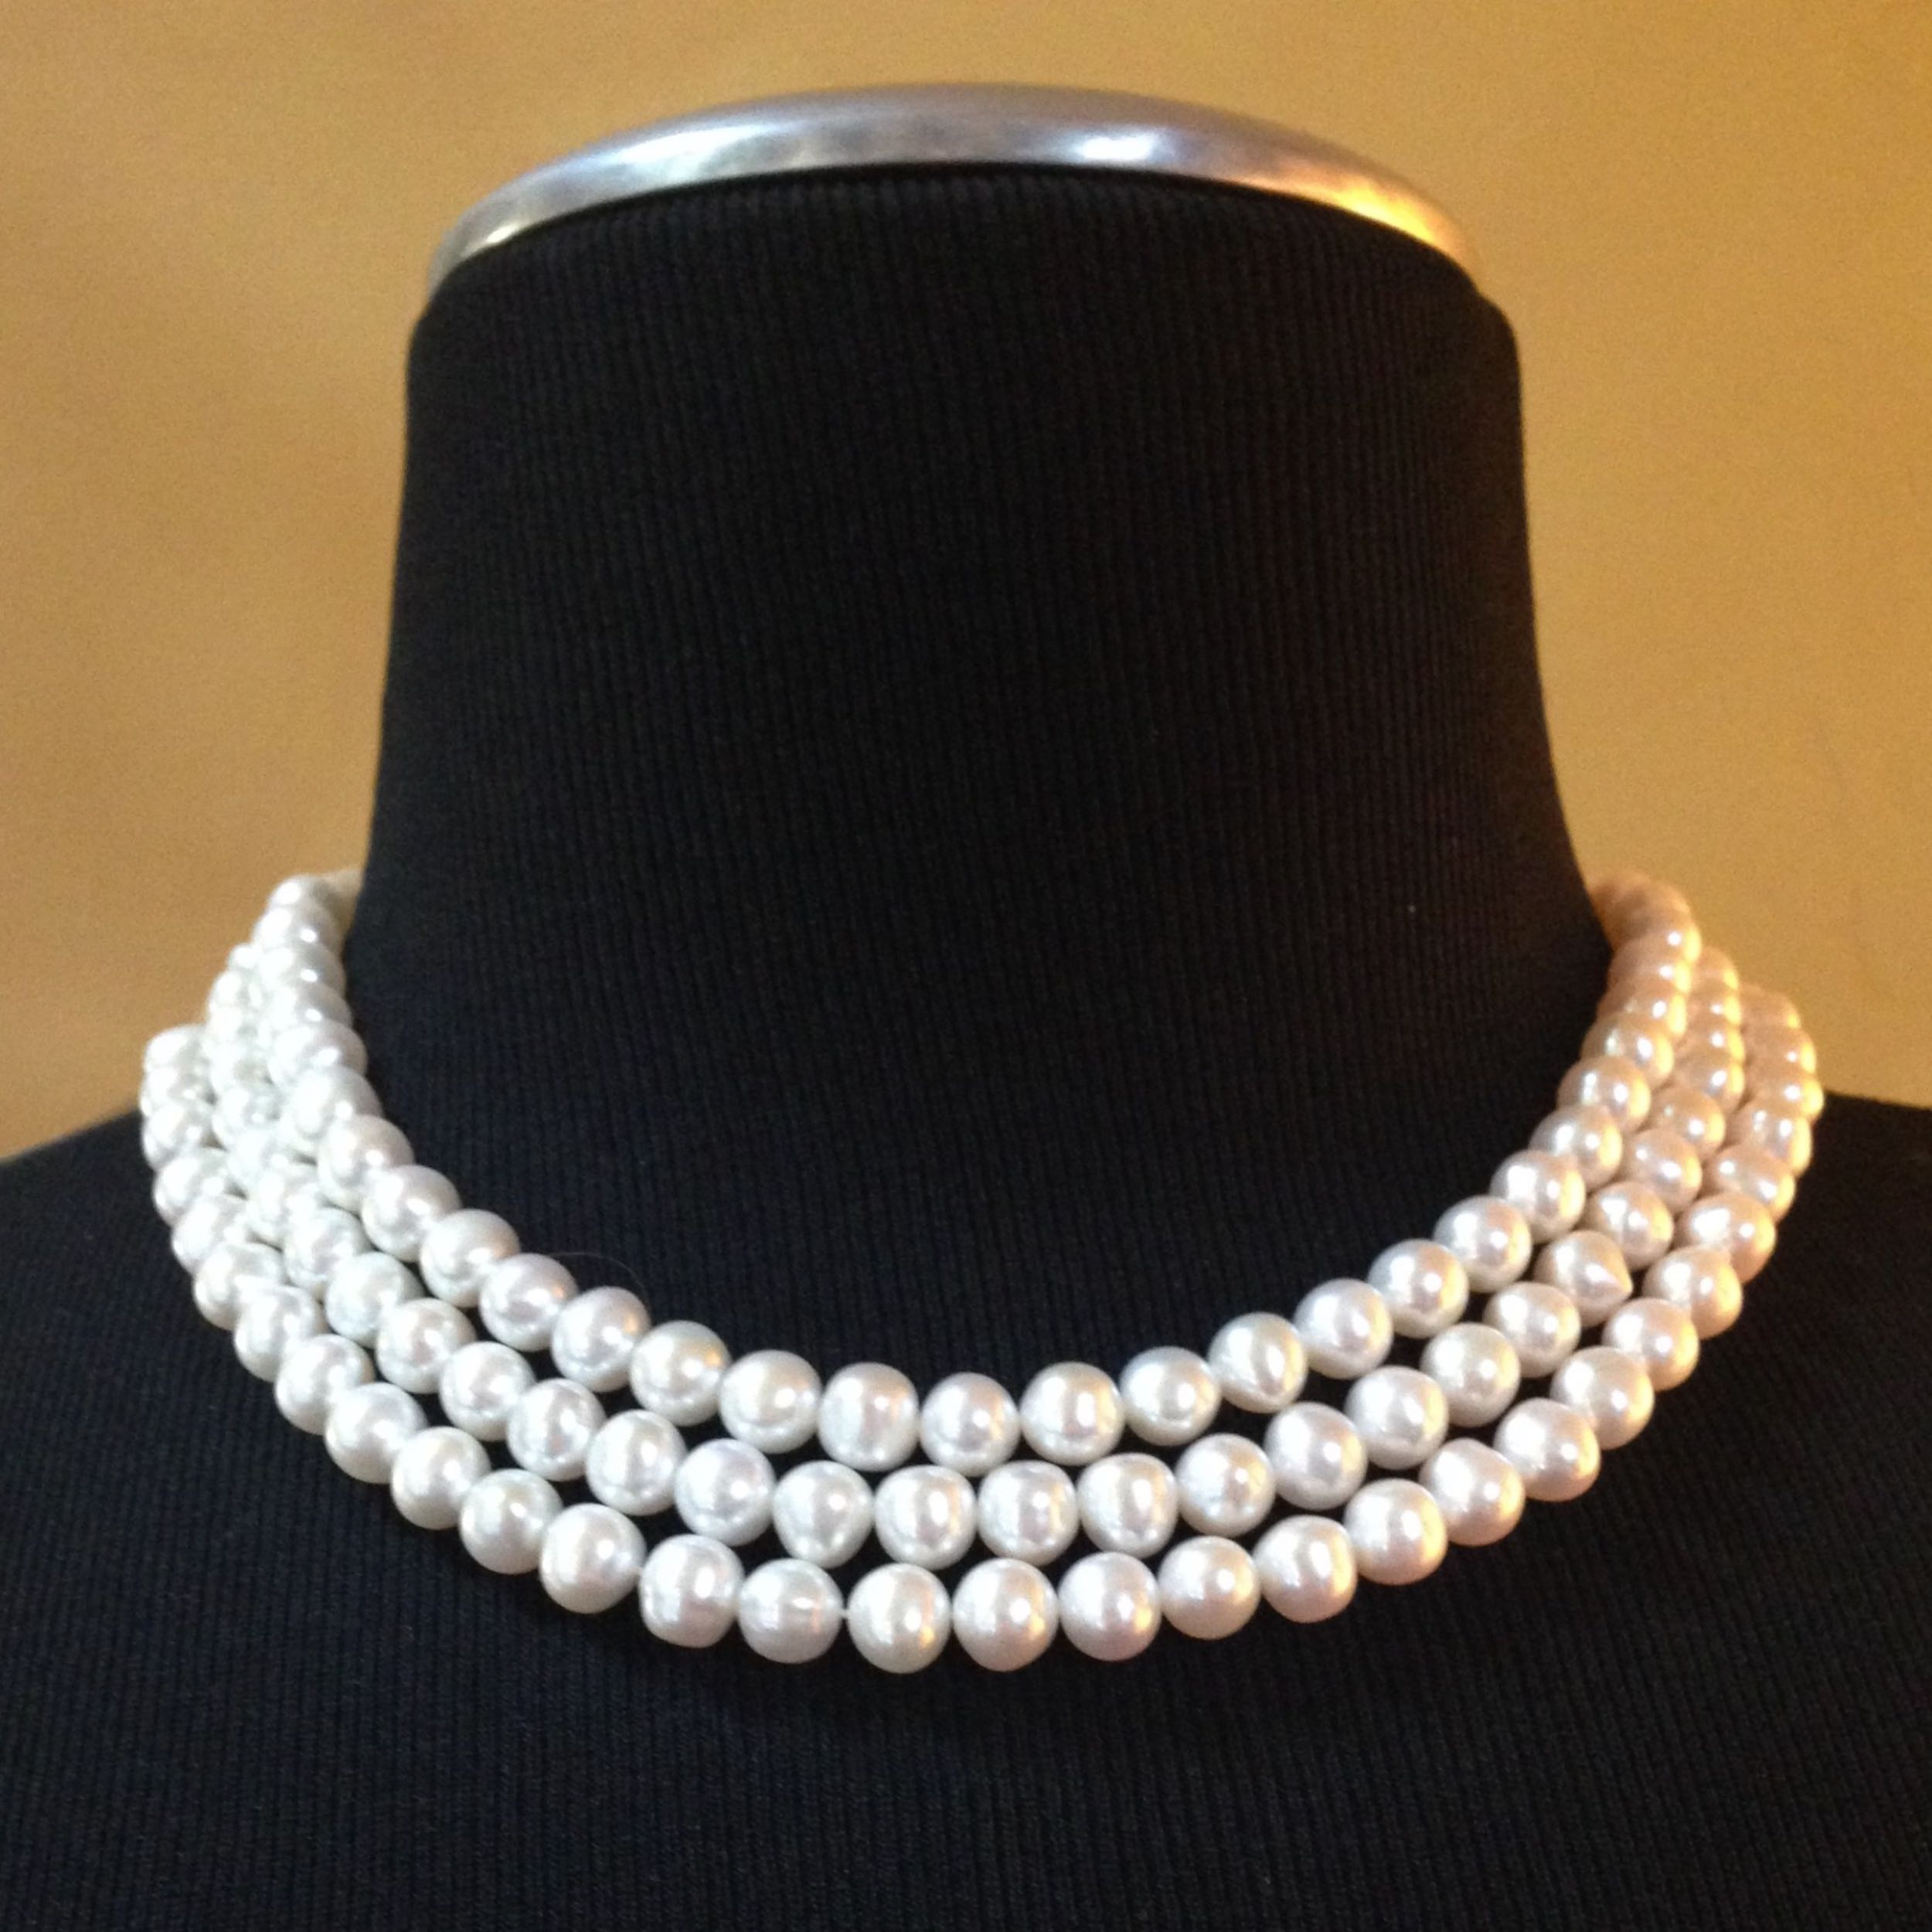 Custom made triple strand pearl necklace, strung on silk and finished with a silver clasp. Custom orders welcomed.